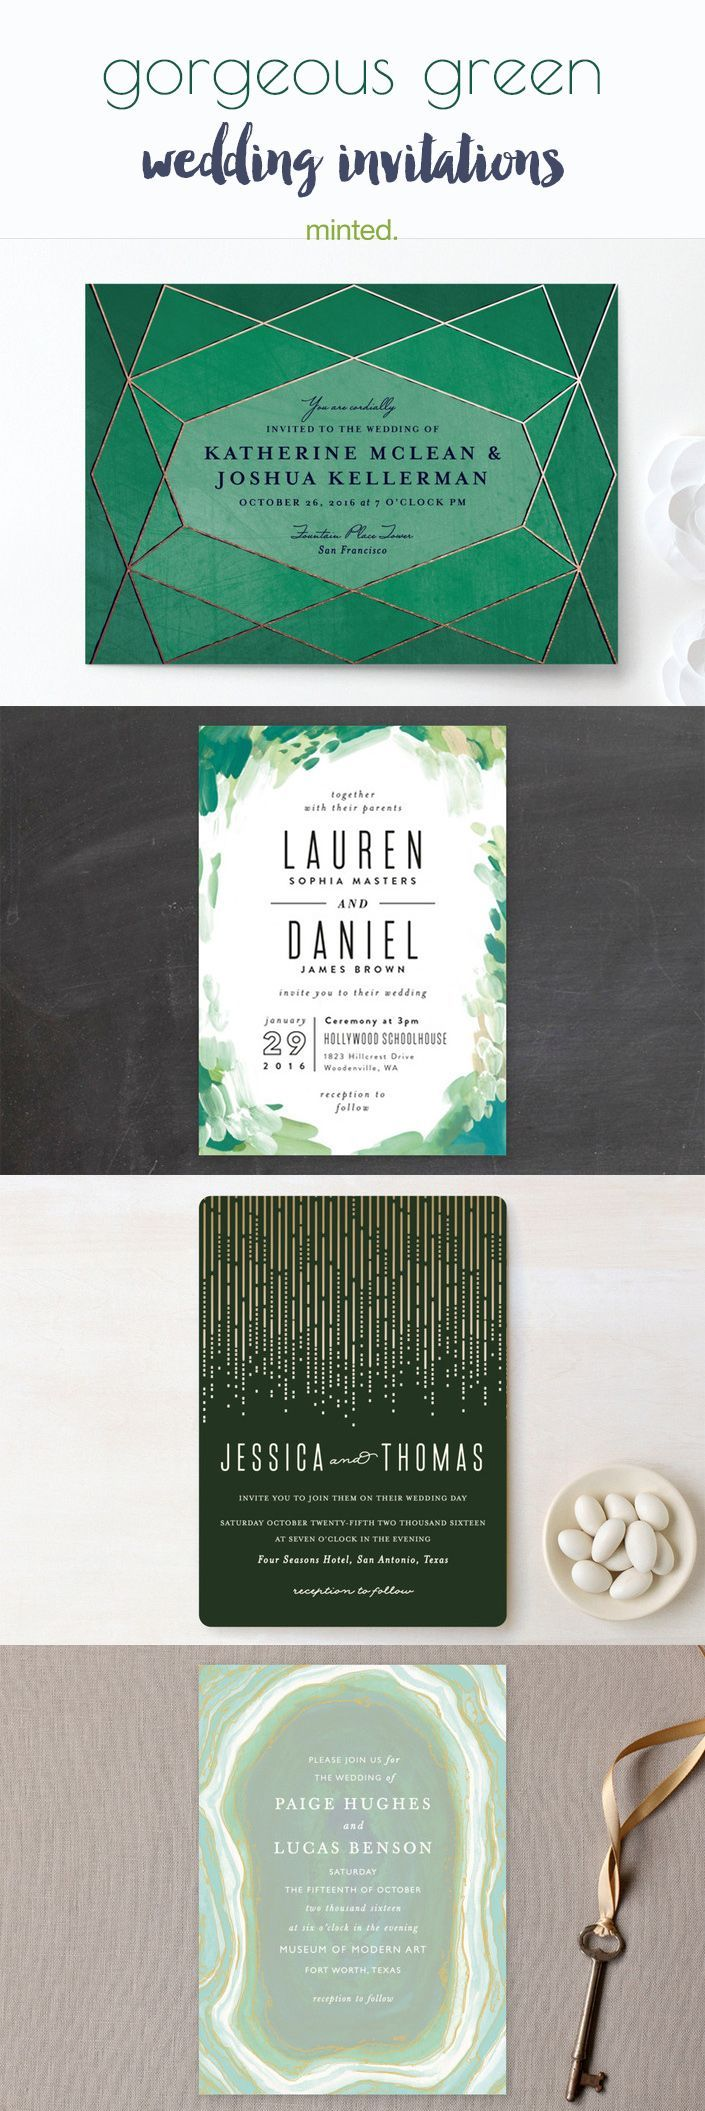 Gorgeous green wedding invitations perfect for emerald or lush green forest inspired weddings.